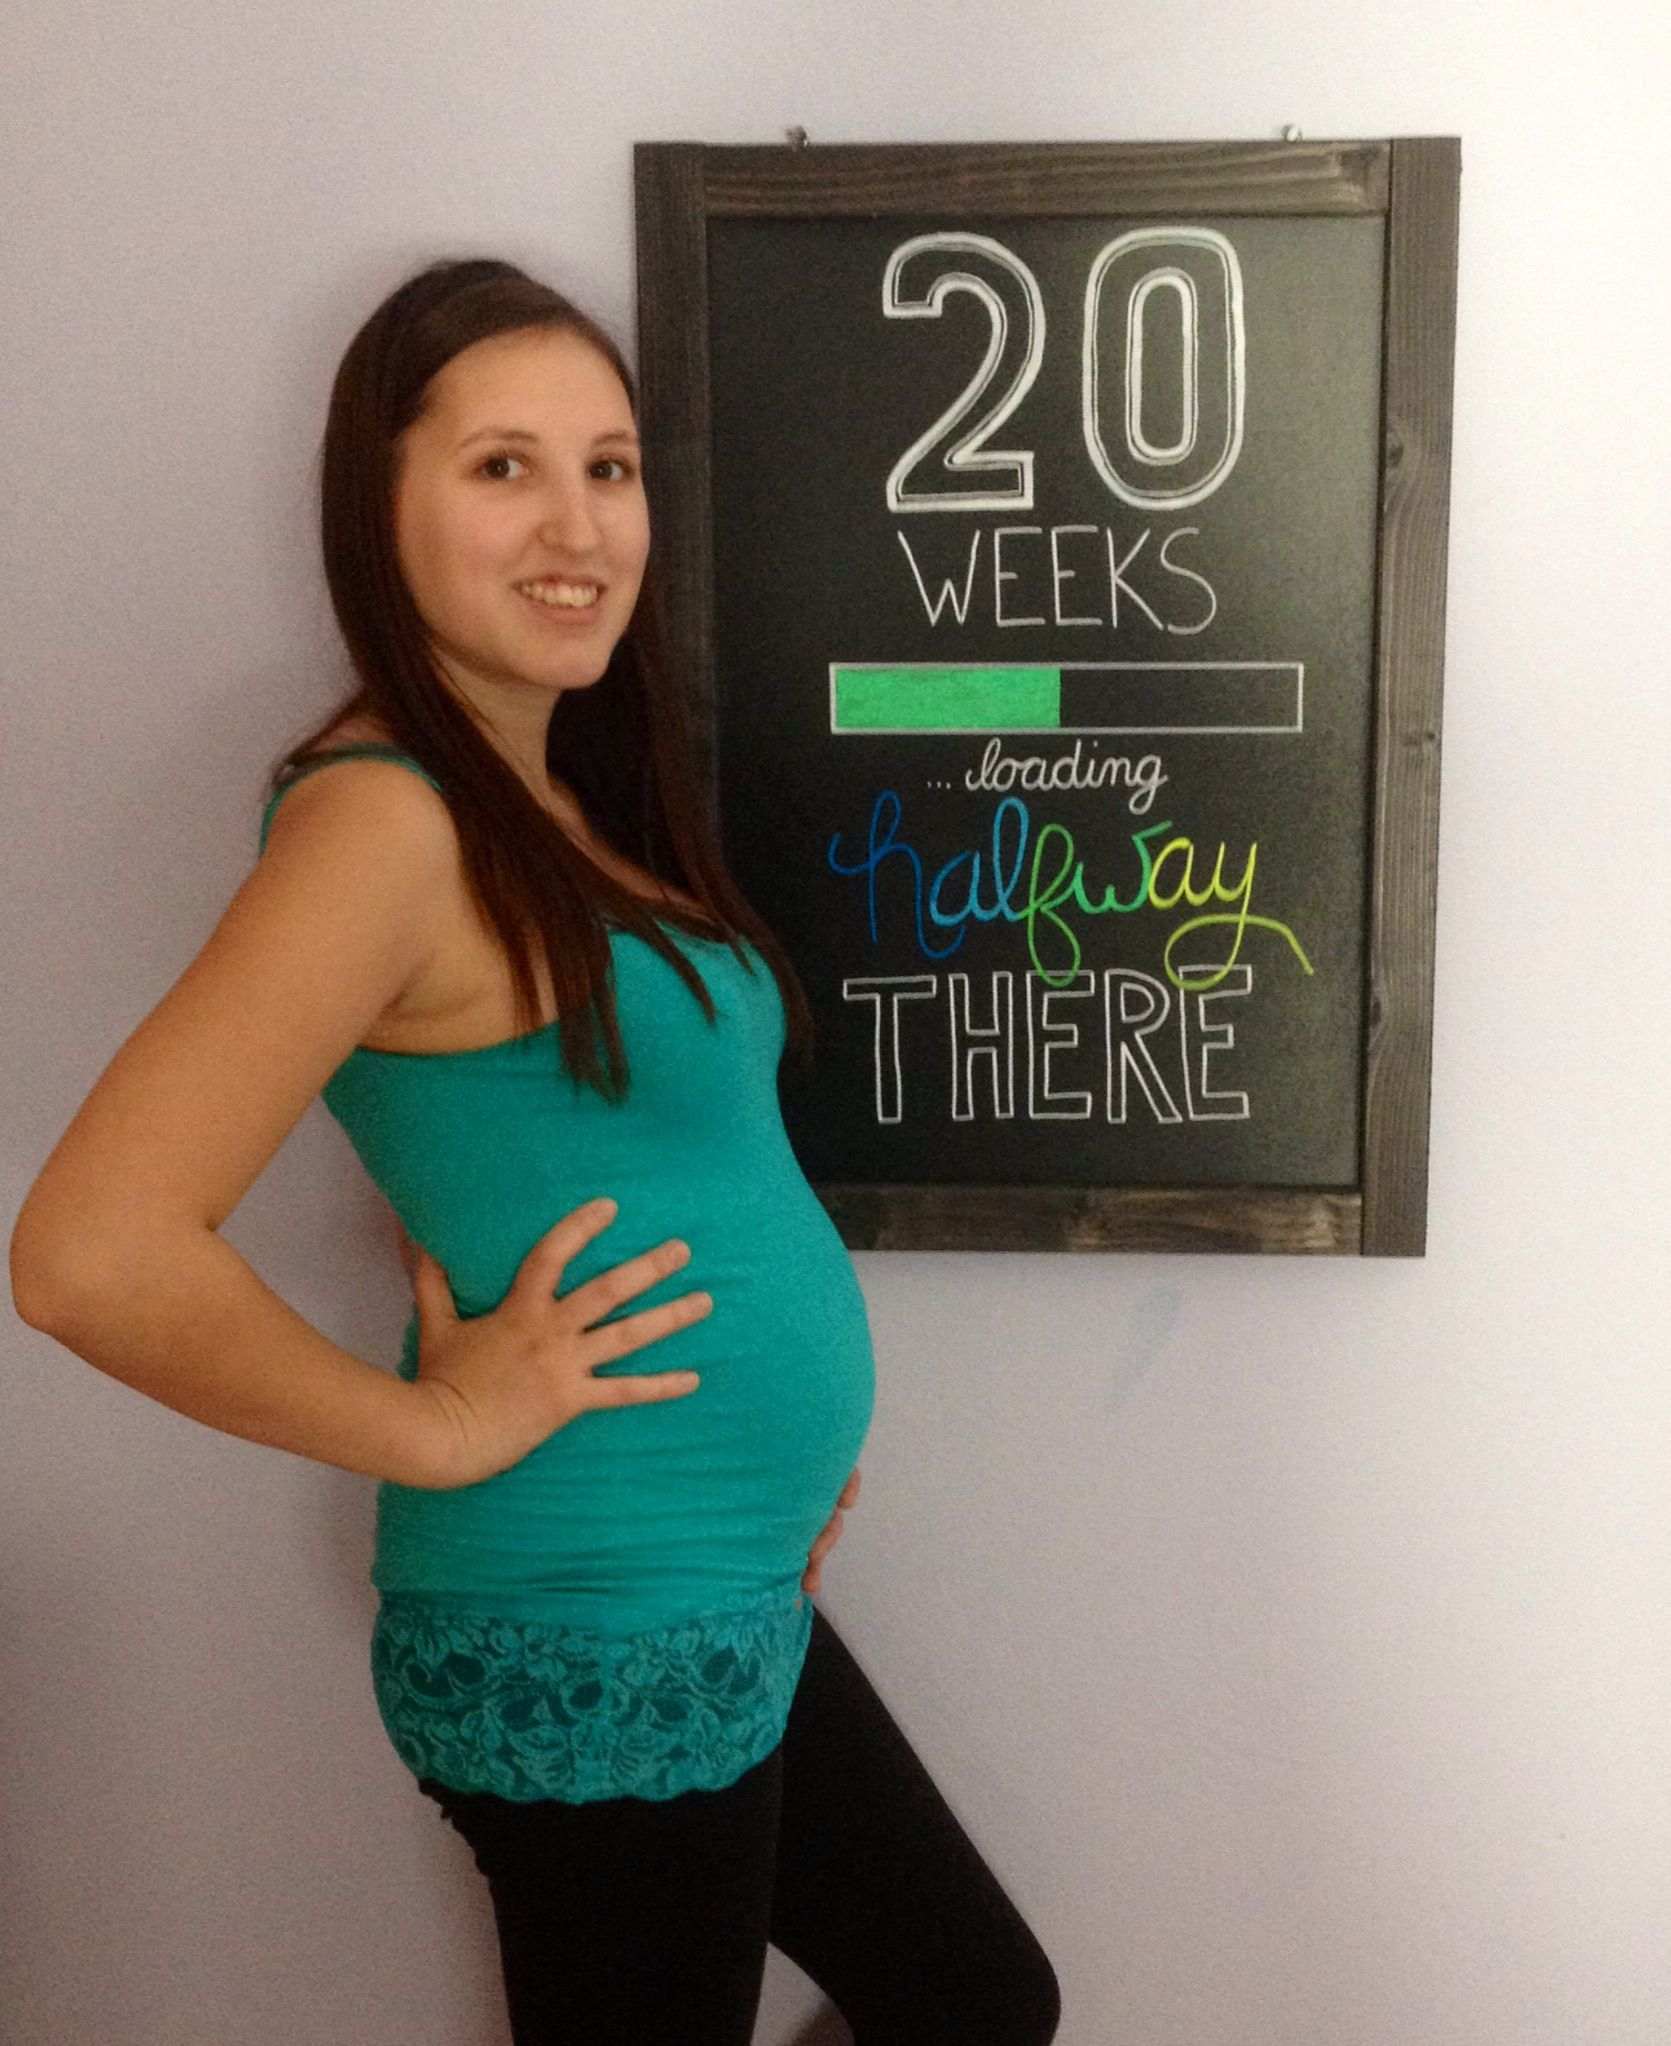 Picture of 3 weeks pregnant woman 20